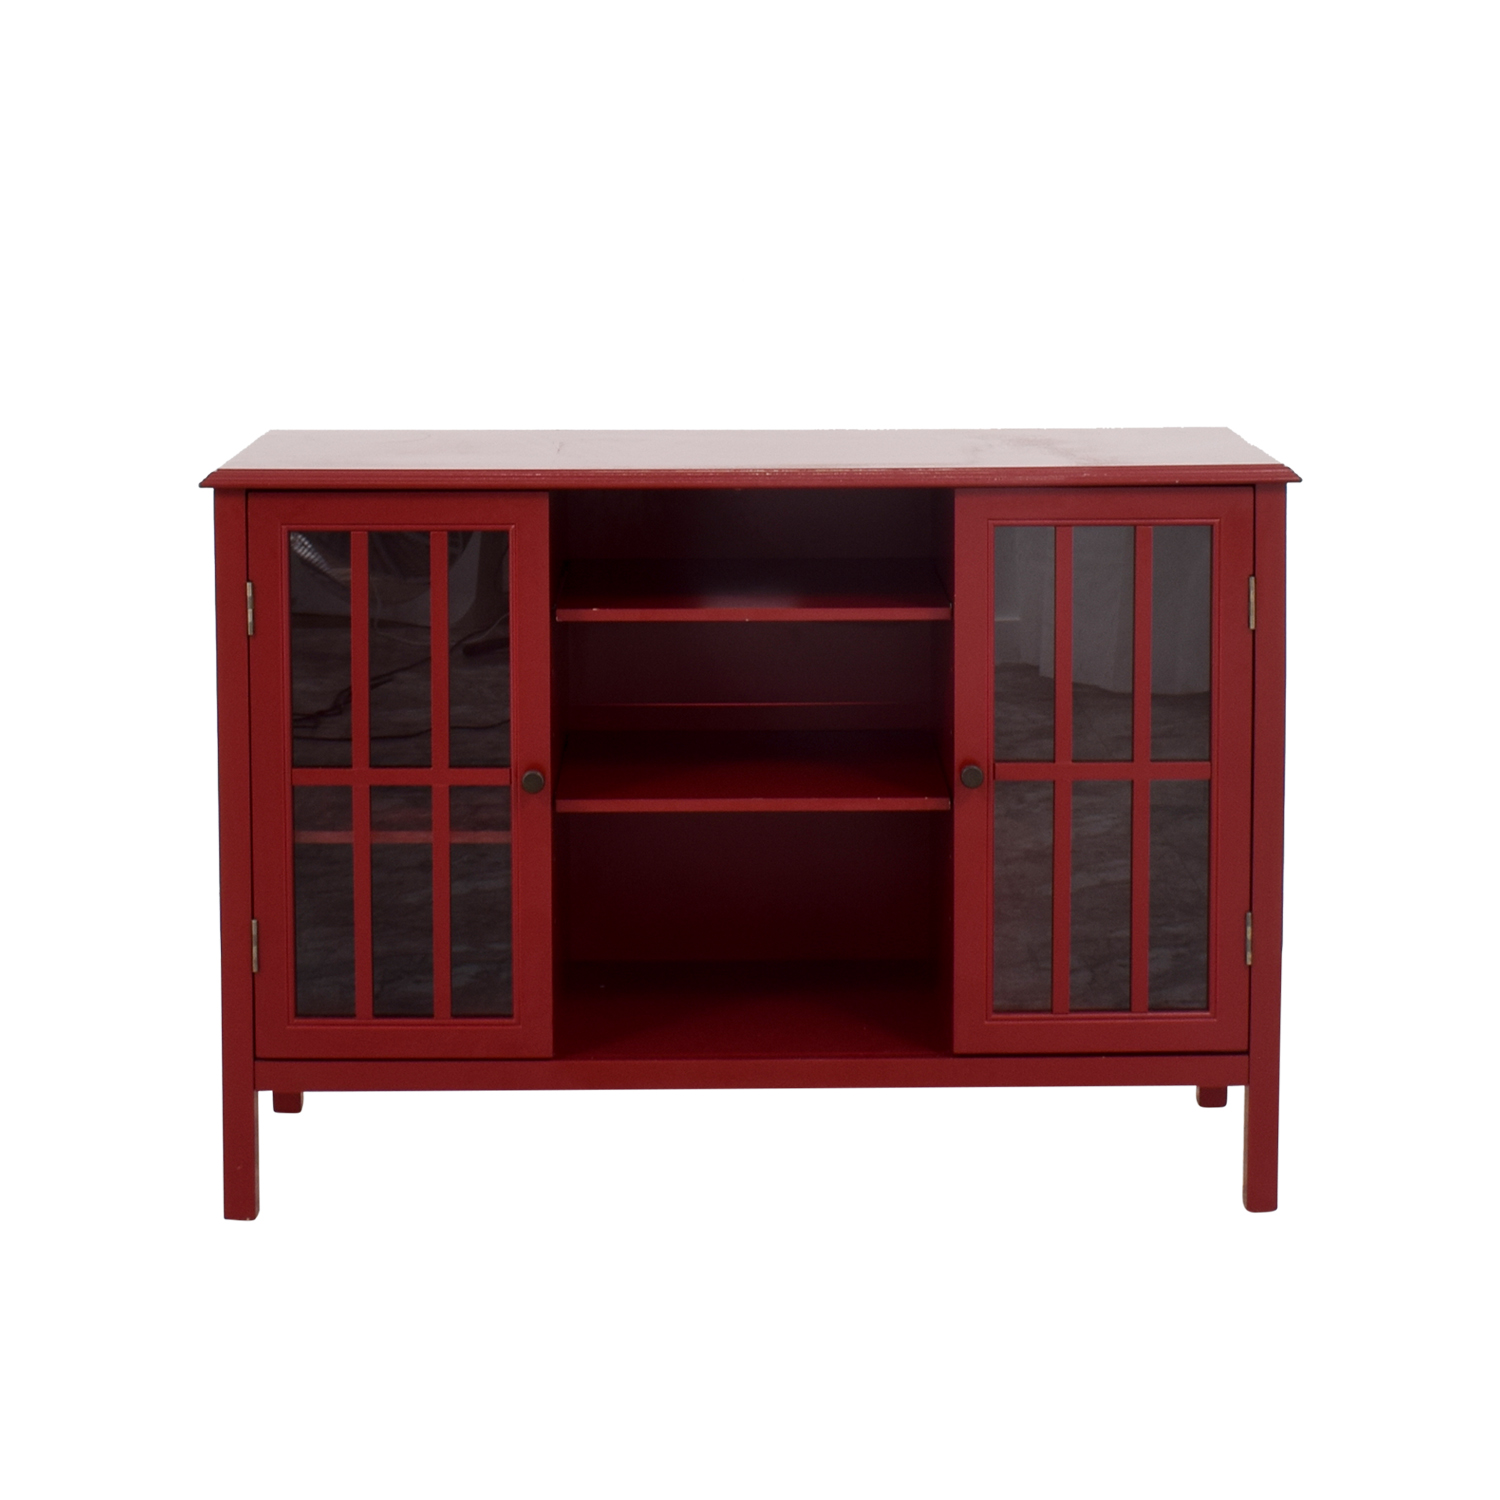 Target Target Windham Two-Door Cabinet with Shelves for sale